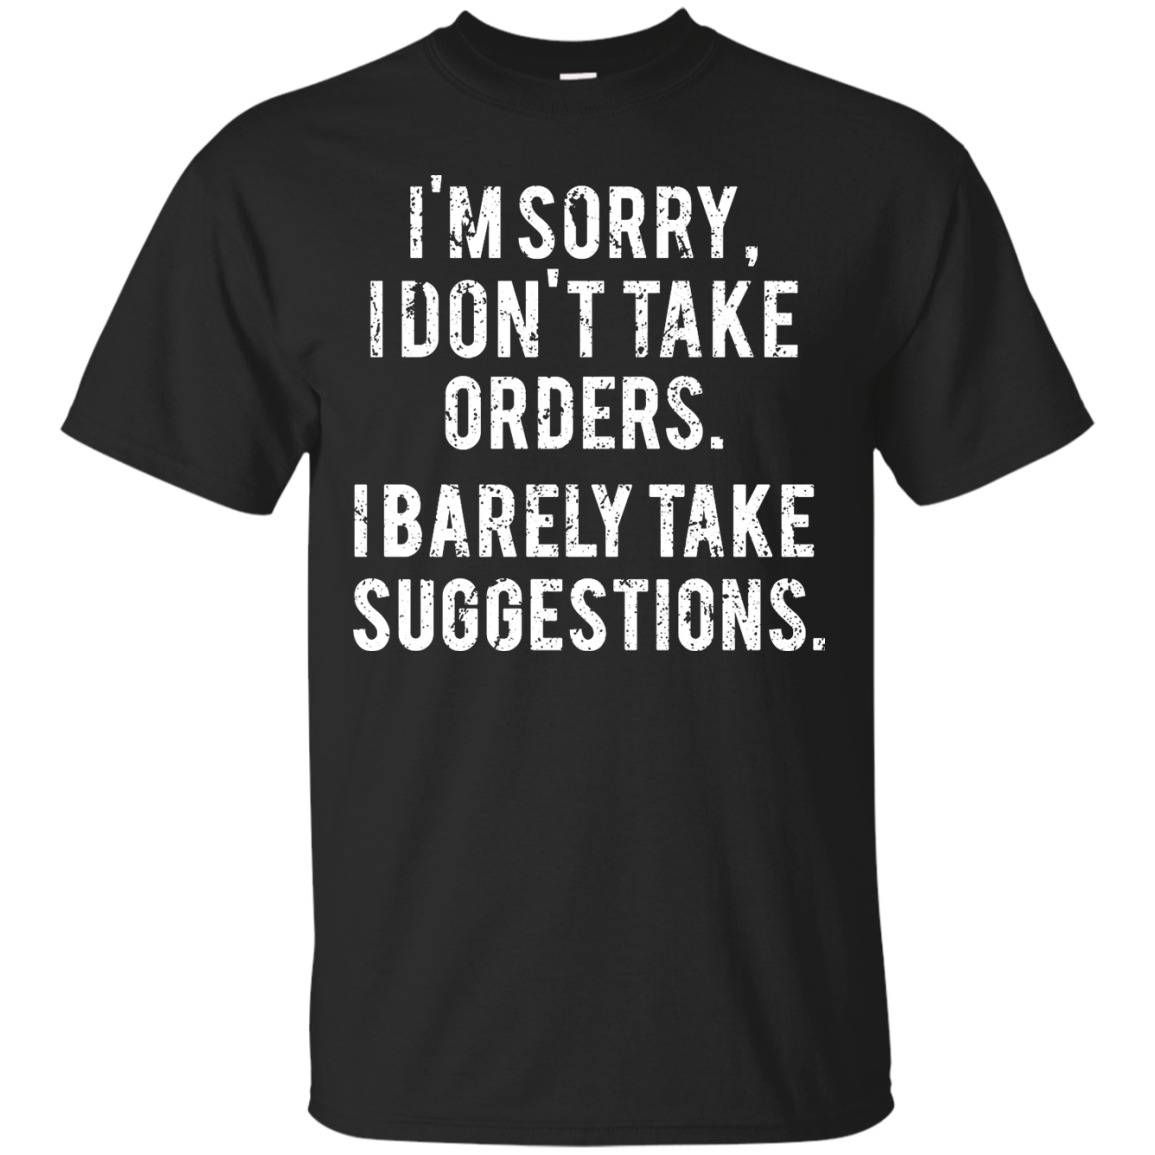 Funny Shirts - I am sorry I don't take orders I barely take suggestions T-shirt,Tank top & Hoodies